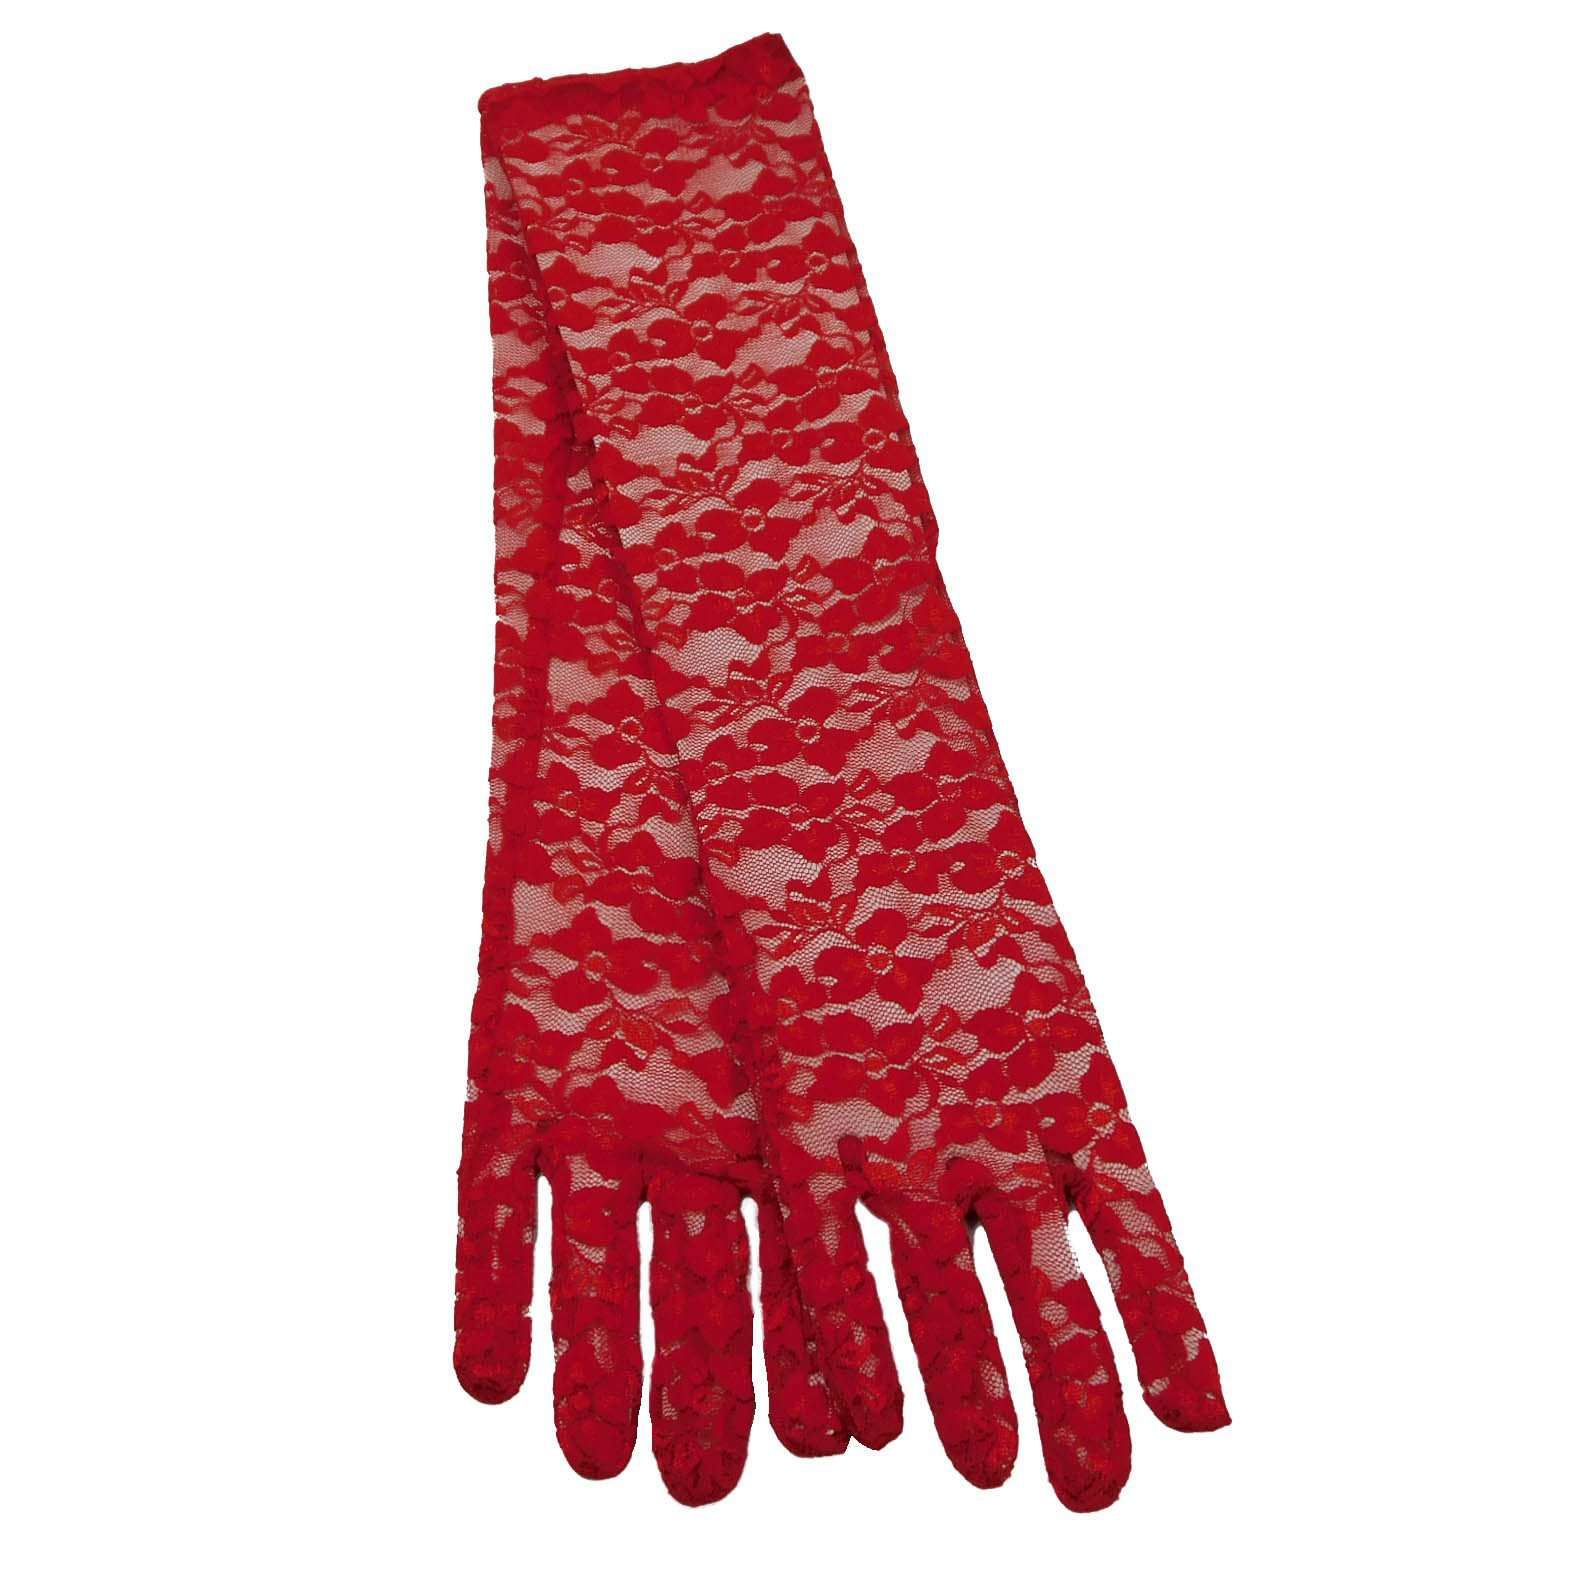 Full Arm Lace Glove - SetarTrading Hats